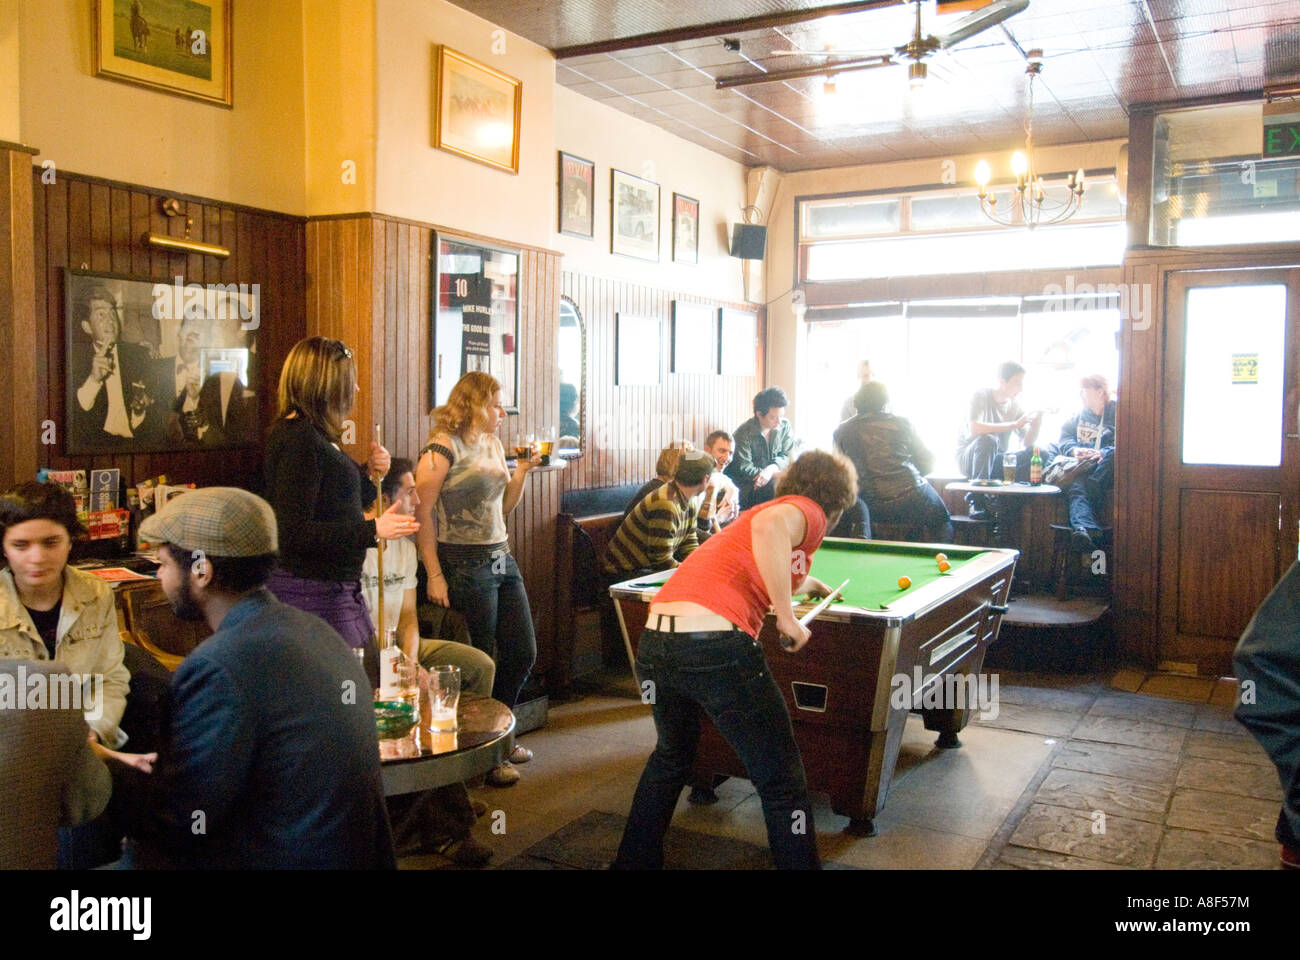 People inside trendy pub The Good Mixer in Camden Town, London England UK - Stock Image